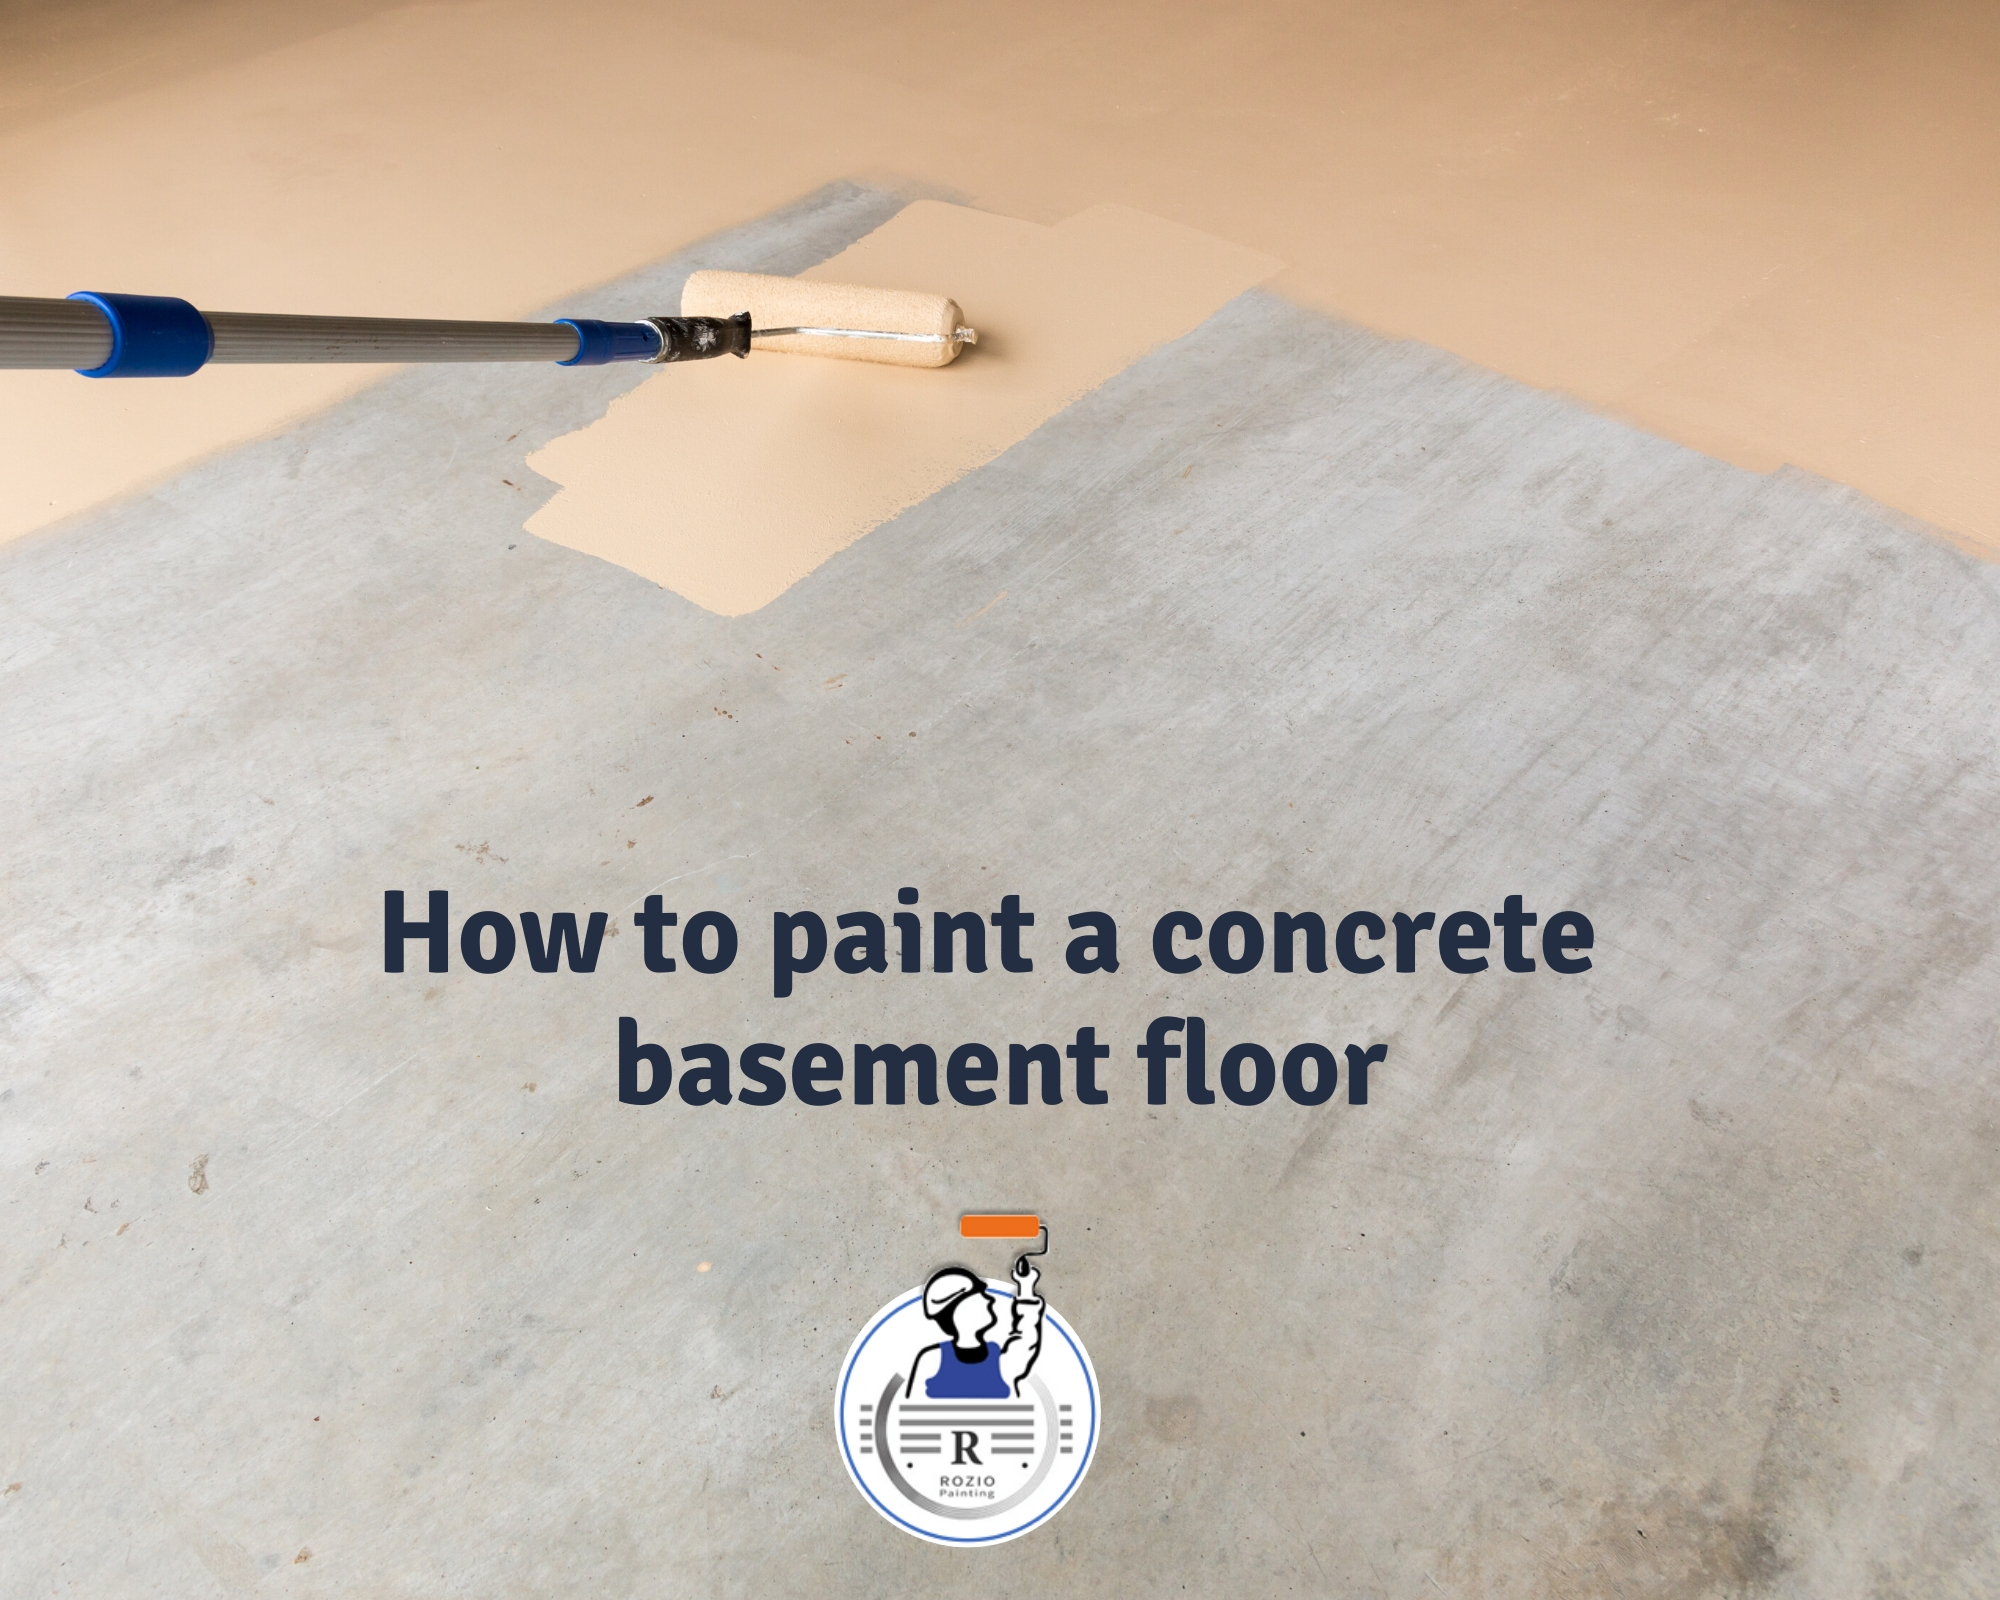 How to paint a concrete basement floor